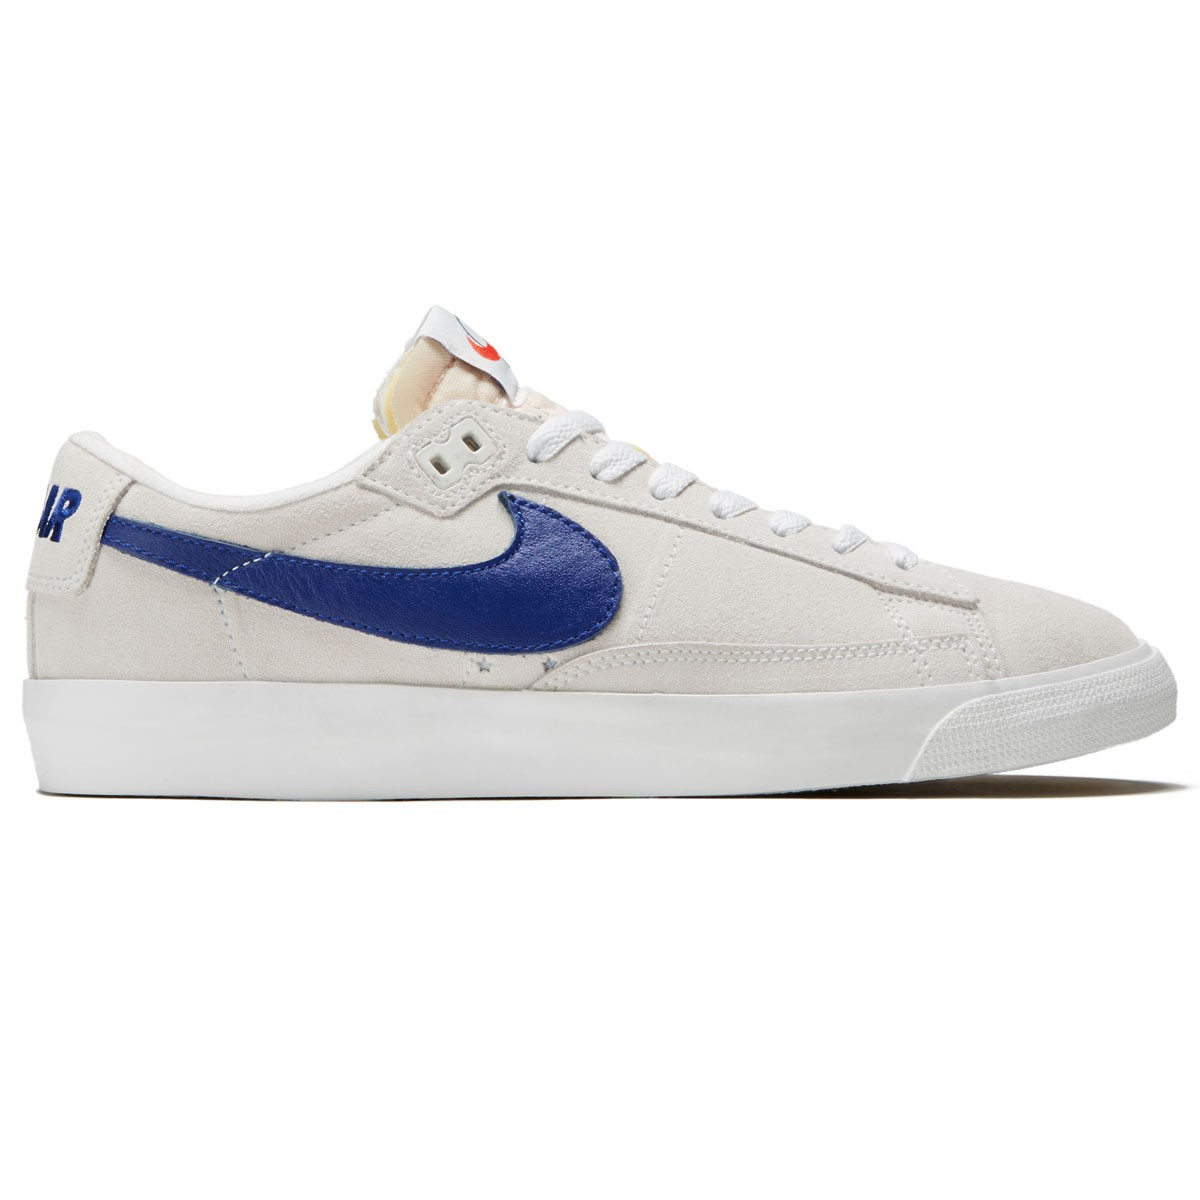 new arrival special sales incredible prices Nike SB x Polar Zoom Blazer Low GT QS Shoes